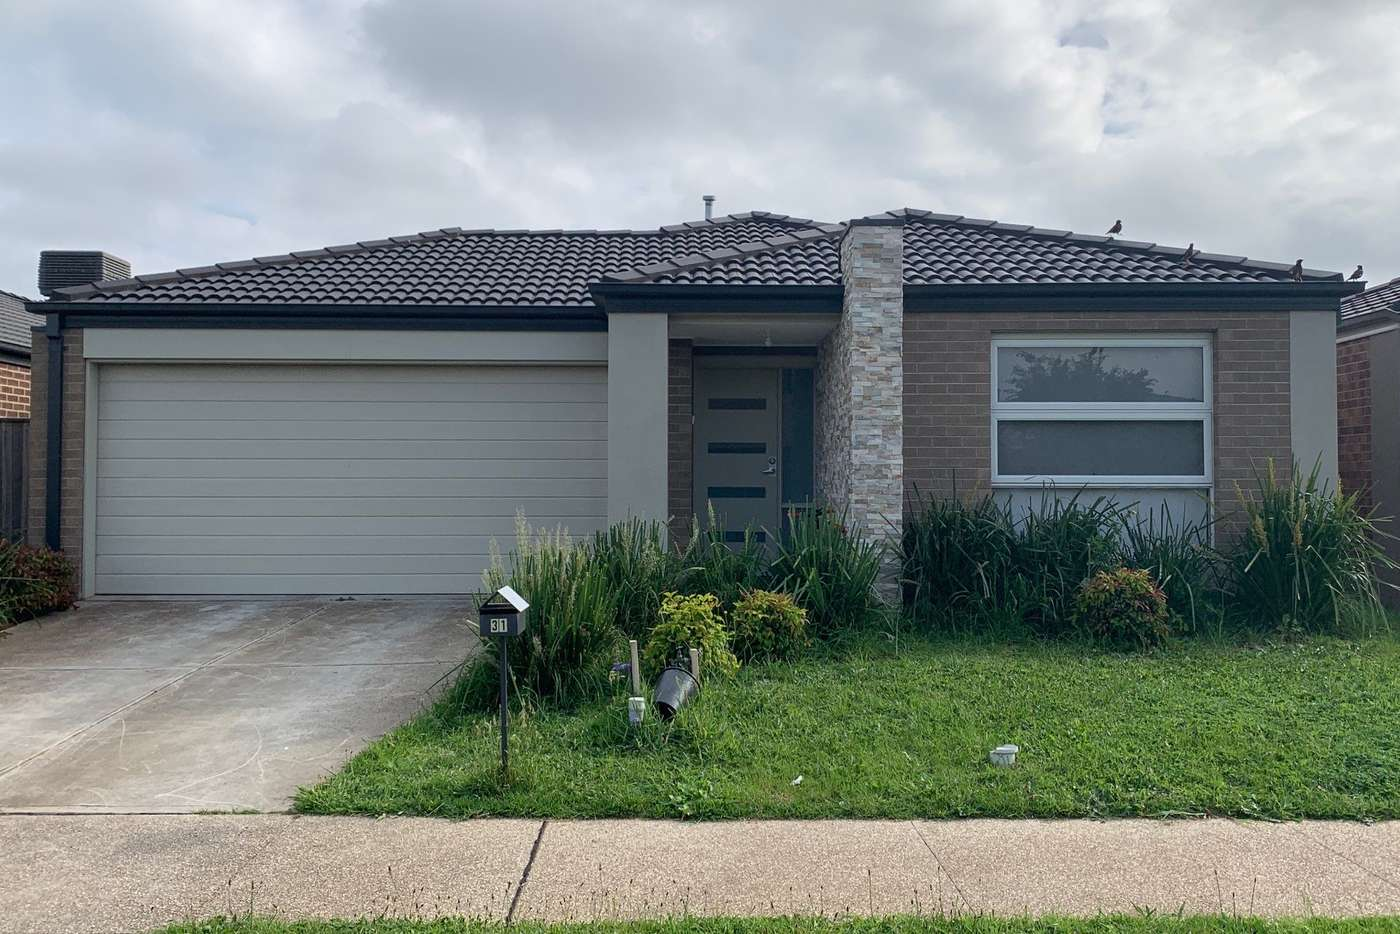 Main view of Homely house listing, 31 Naomi Street, Pakenham VIC 3810